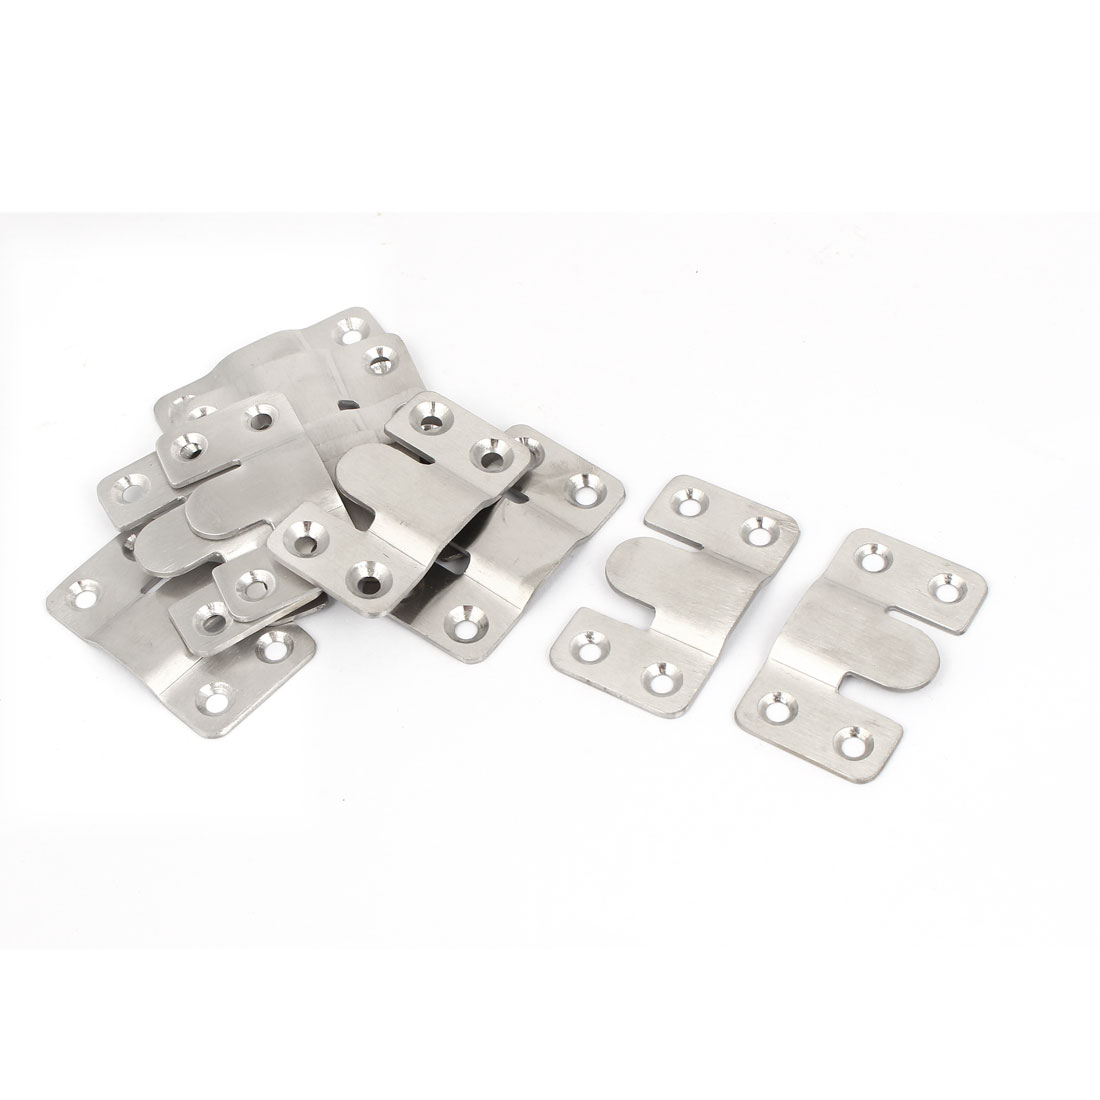 Sofa Furniture Photo Frame Interlock Bracket Hook Connector 53x30mm 12pcs